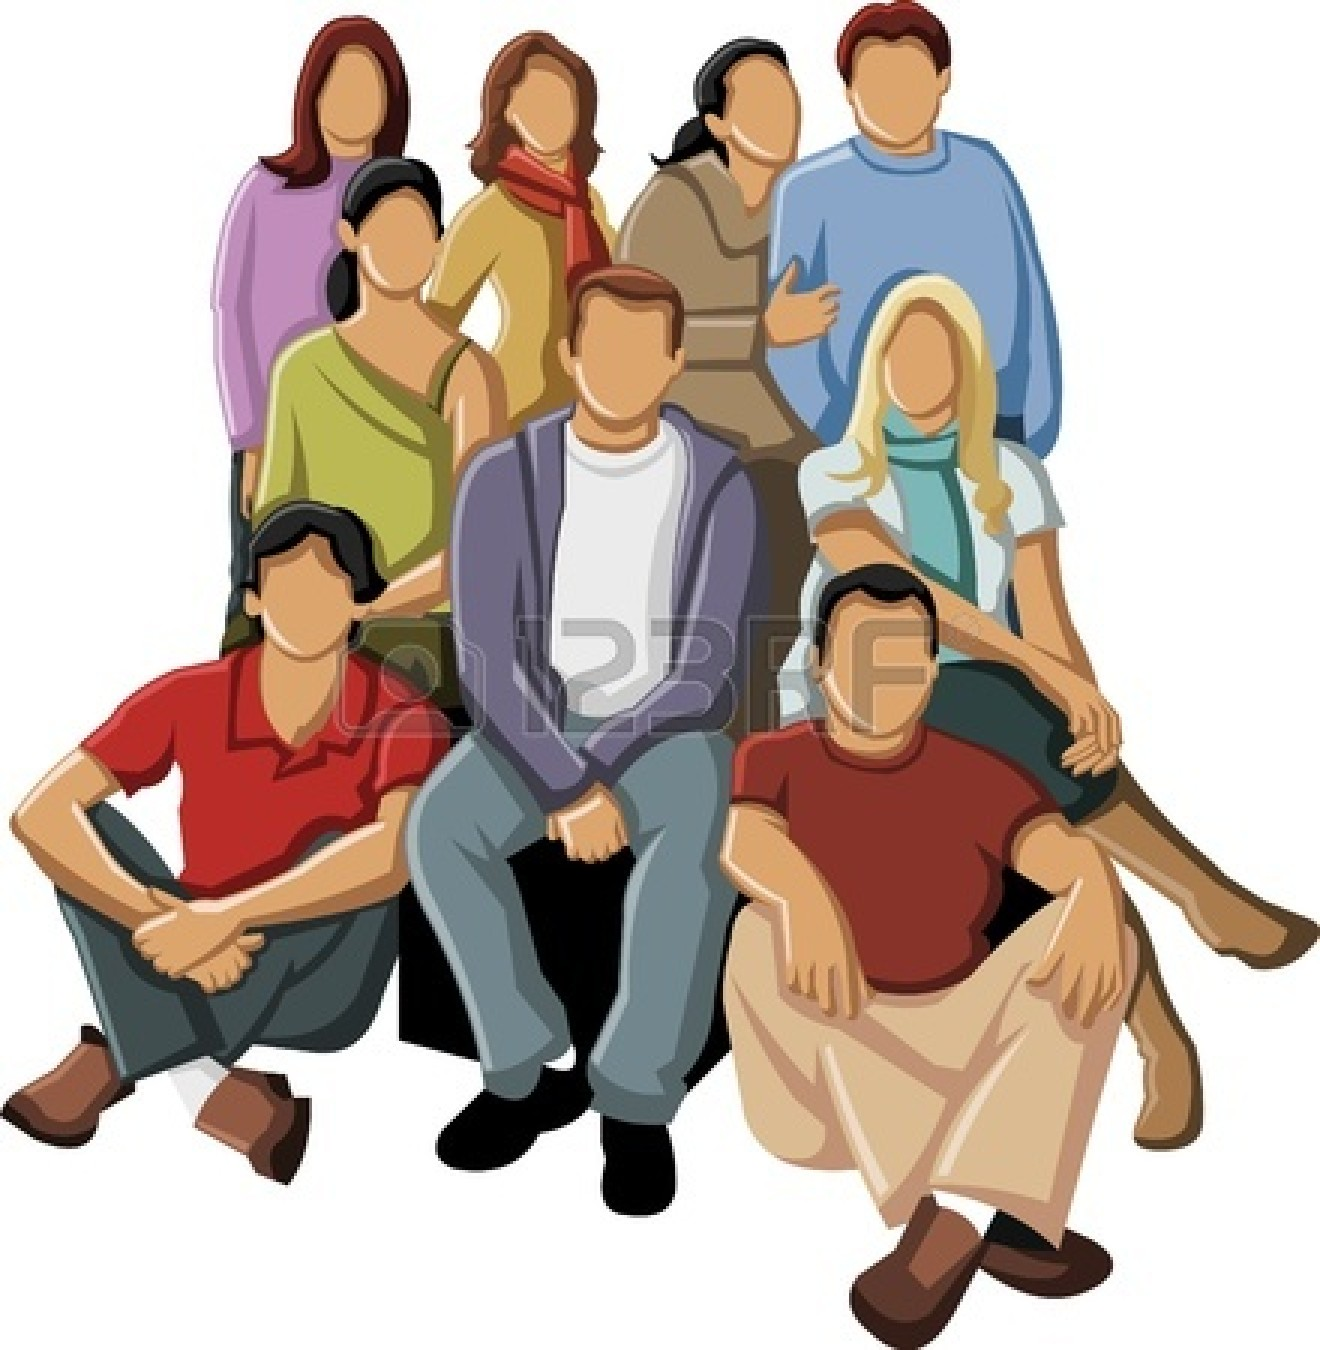 Group of business people clipart 16876016 group of young people